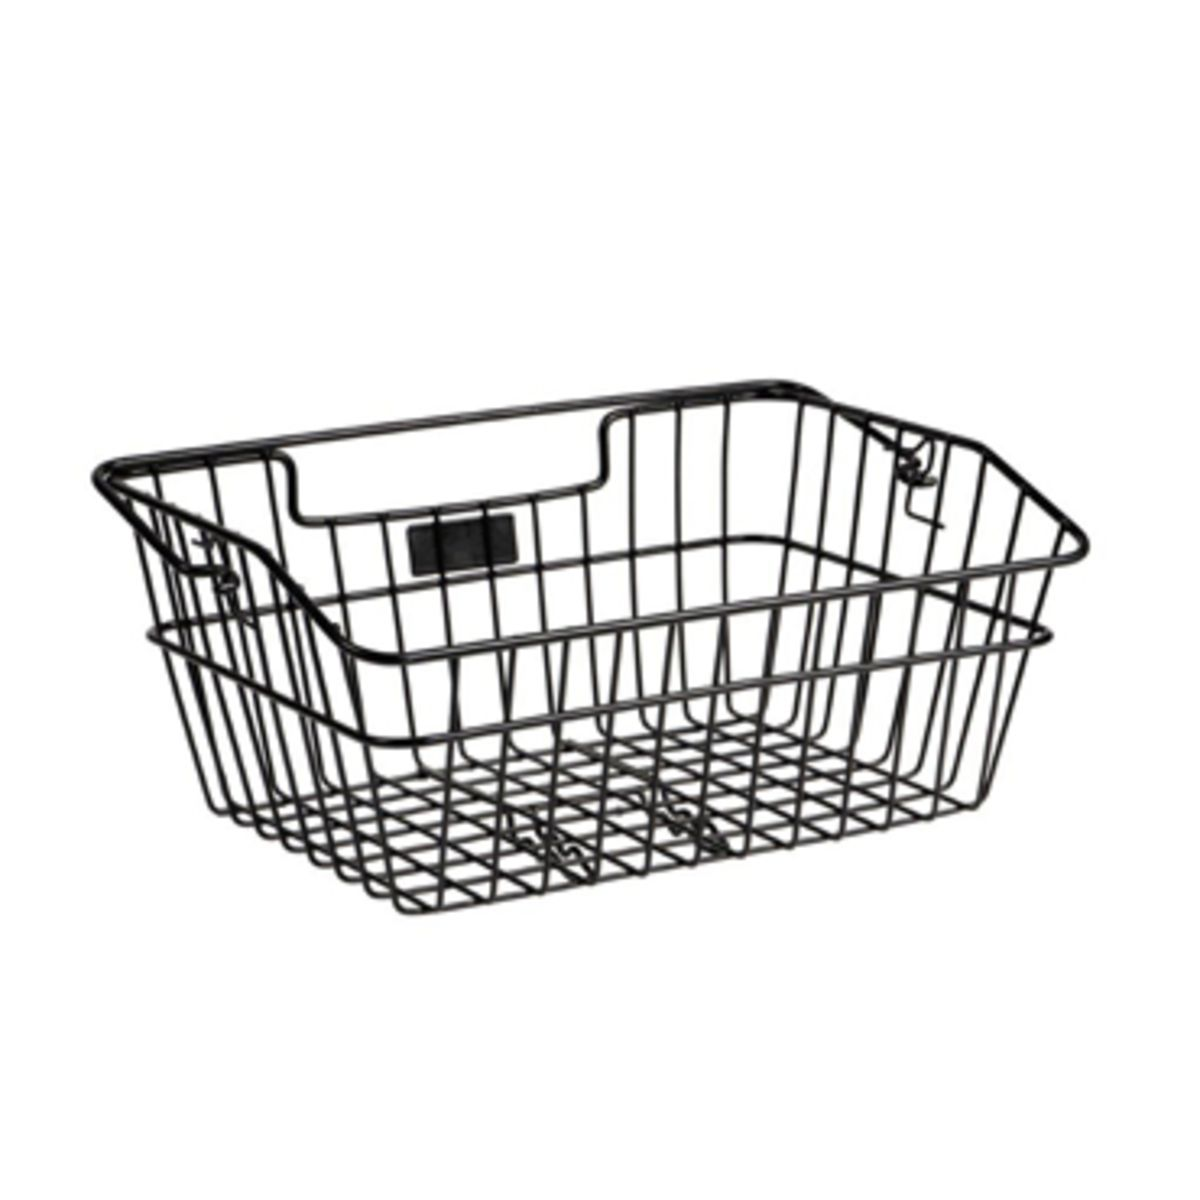 UNIX COLETTO rear bicycle basket